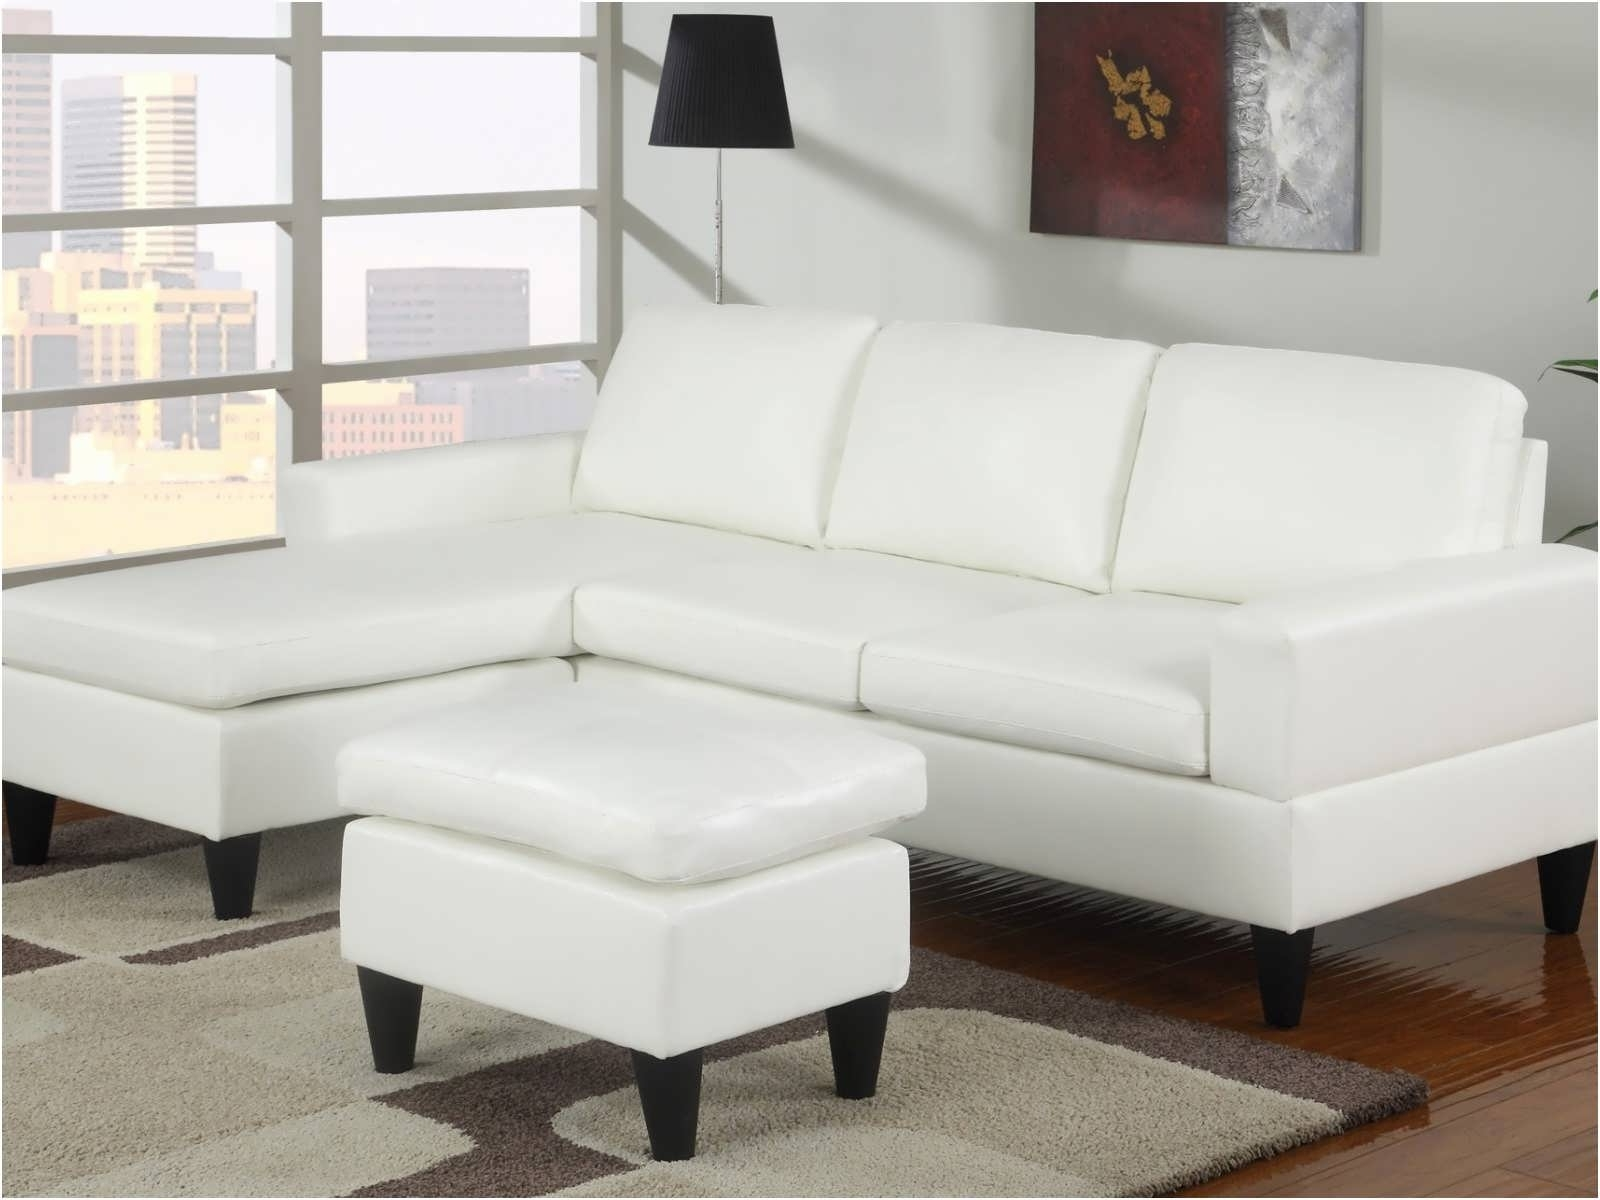 Most Current Sectionalofas Formallpaces Vancouver Modernofa With Recliner For Sectional Sofas At Bc Canada (View 6 of 15)